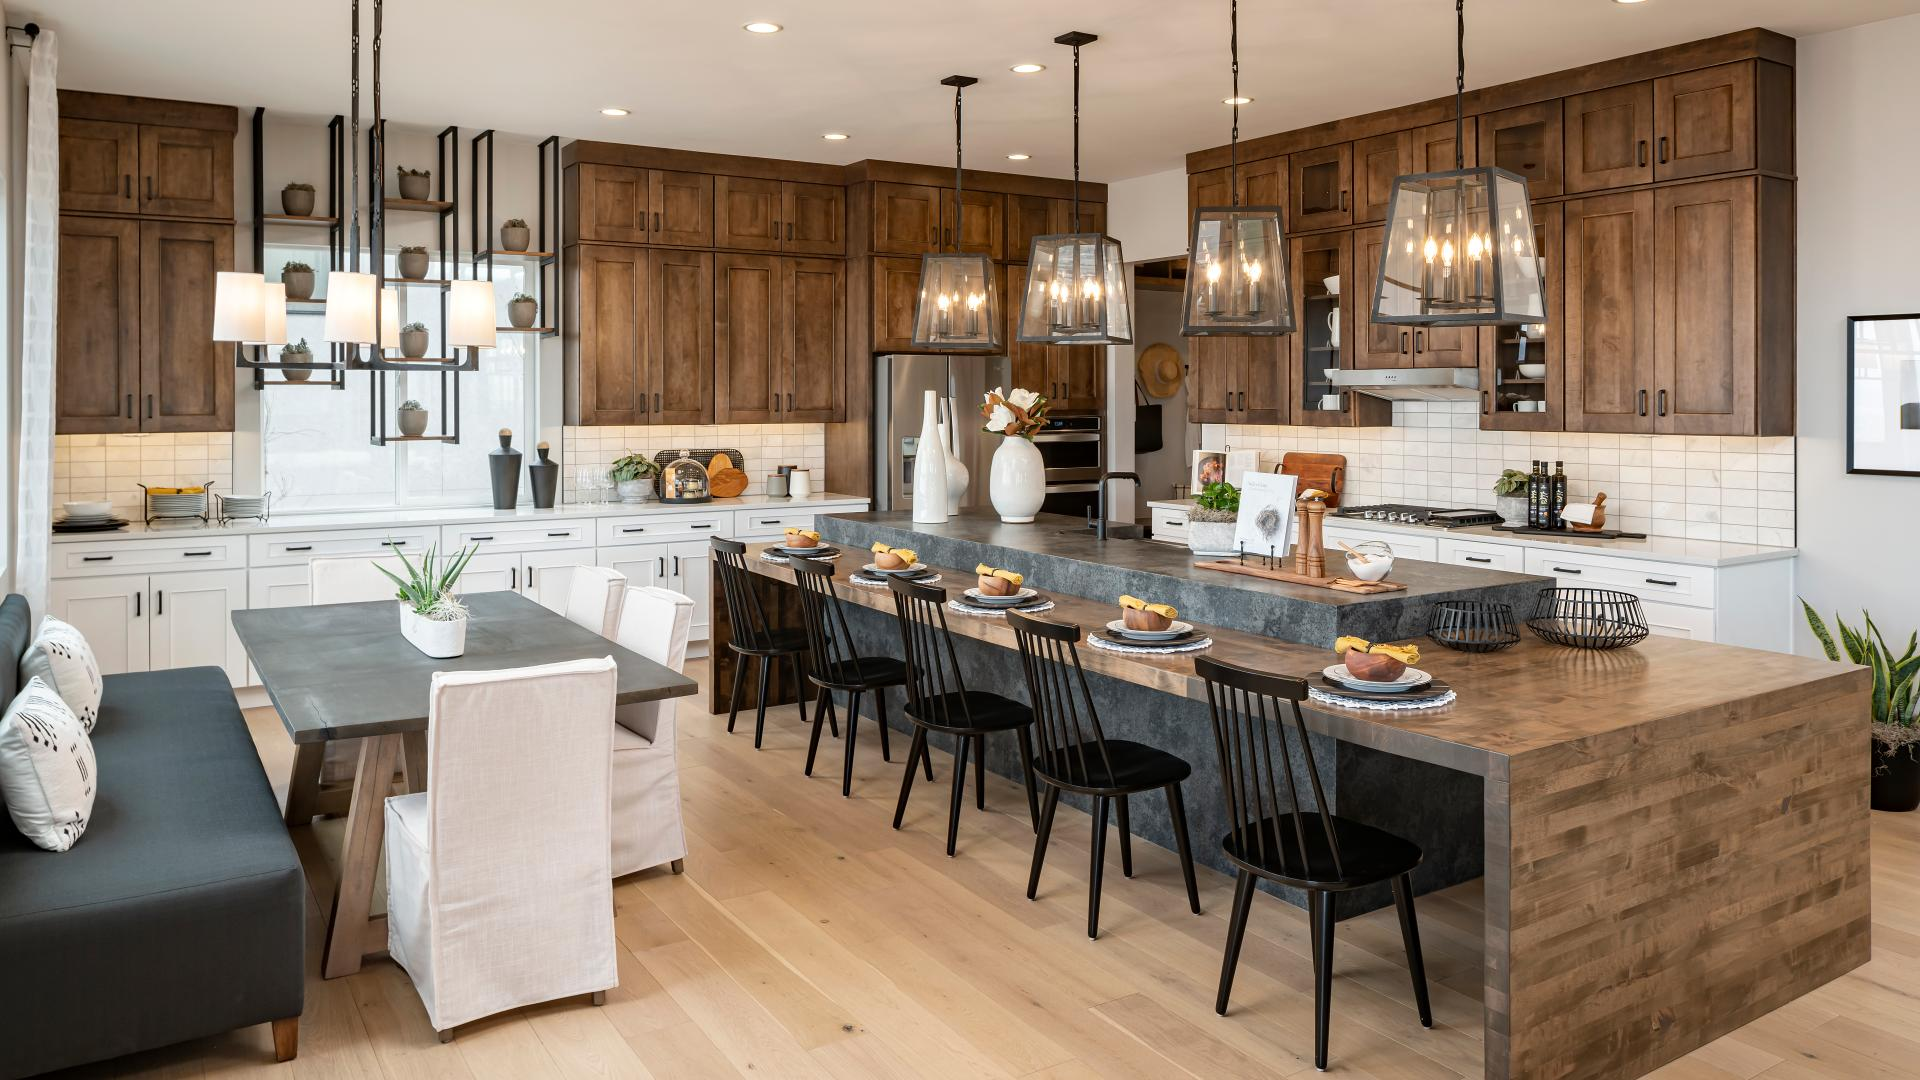 Stunning kitchen designs with a huge center island ideal for entertaining